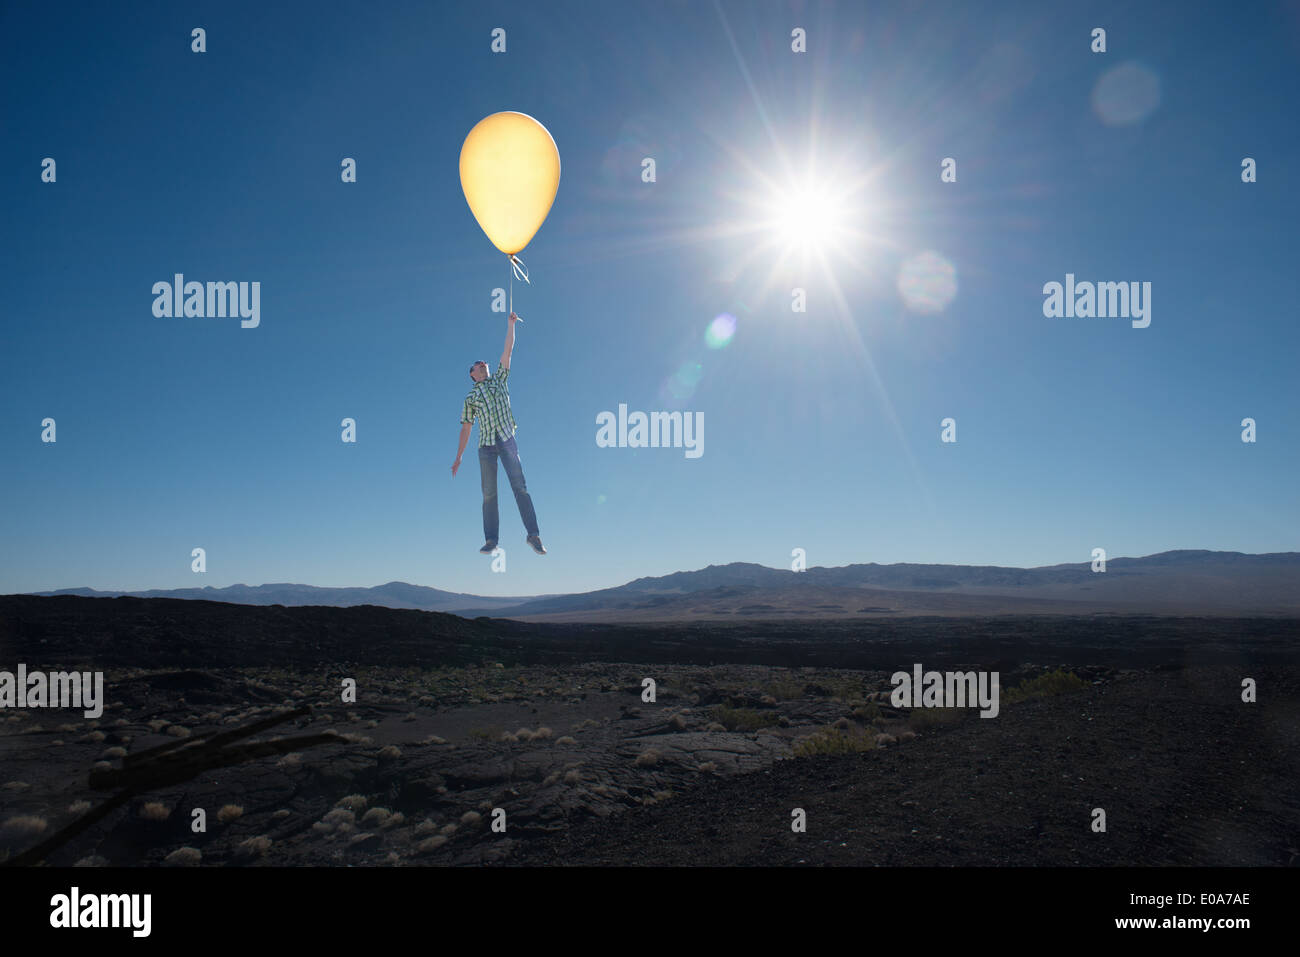 Mid adult man floating avec balloon in desert Photo Stock